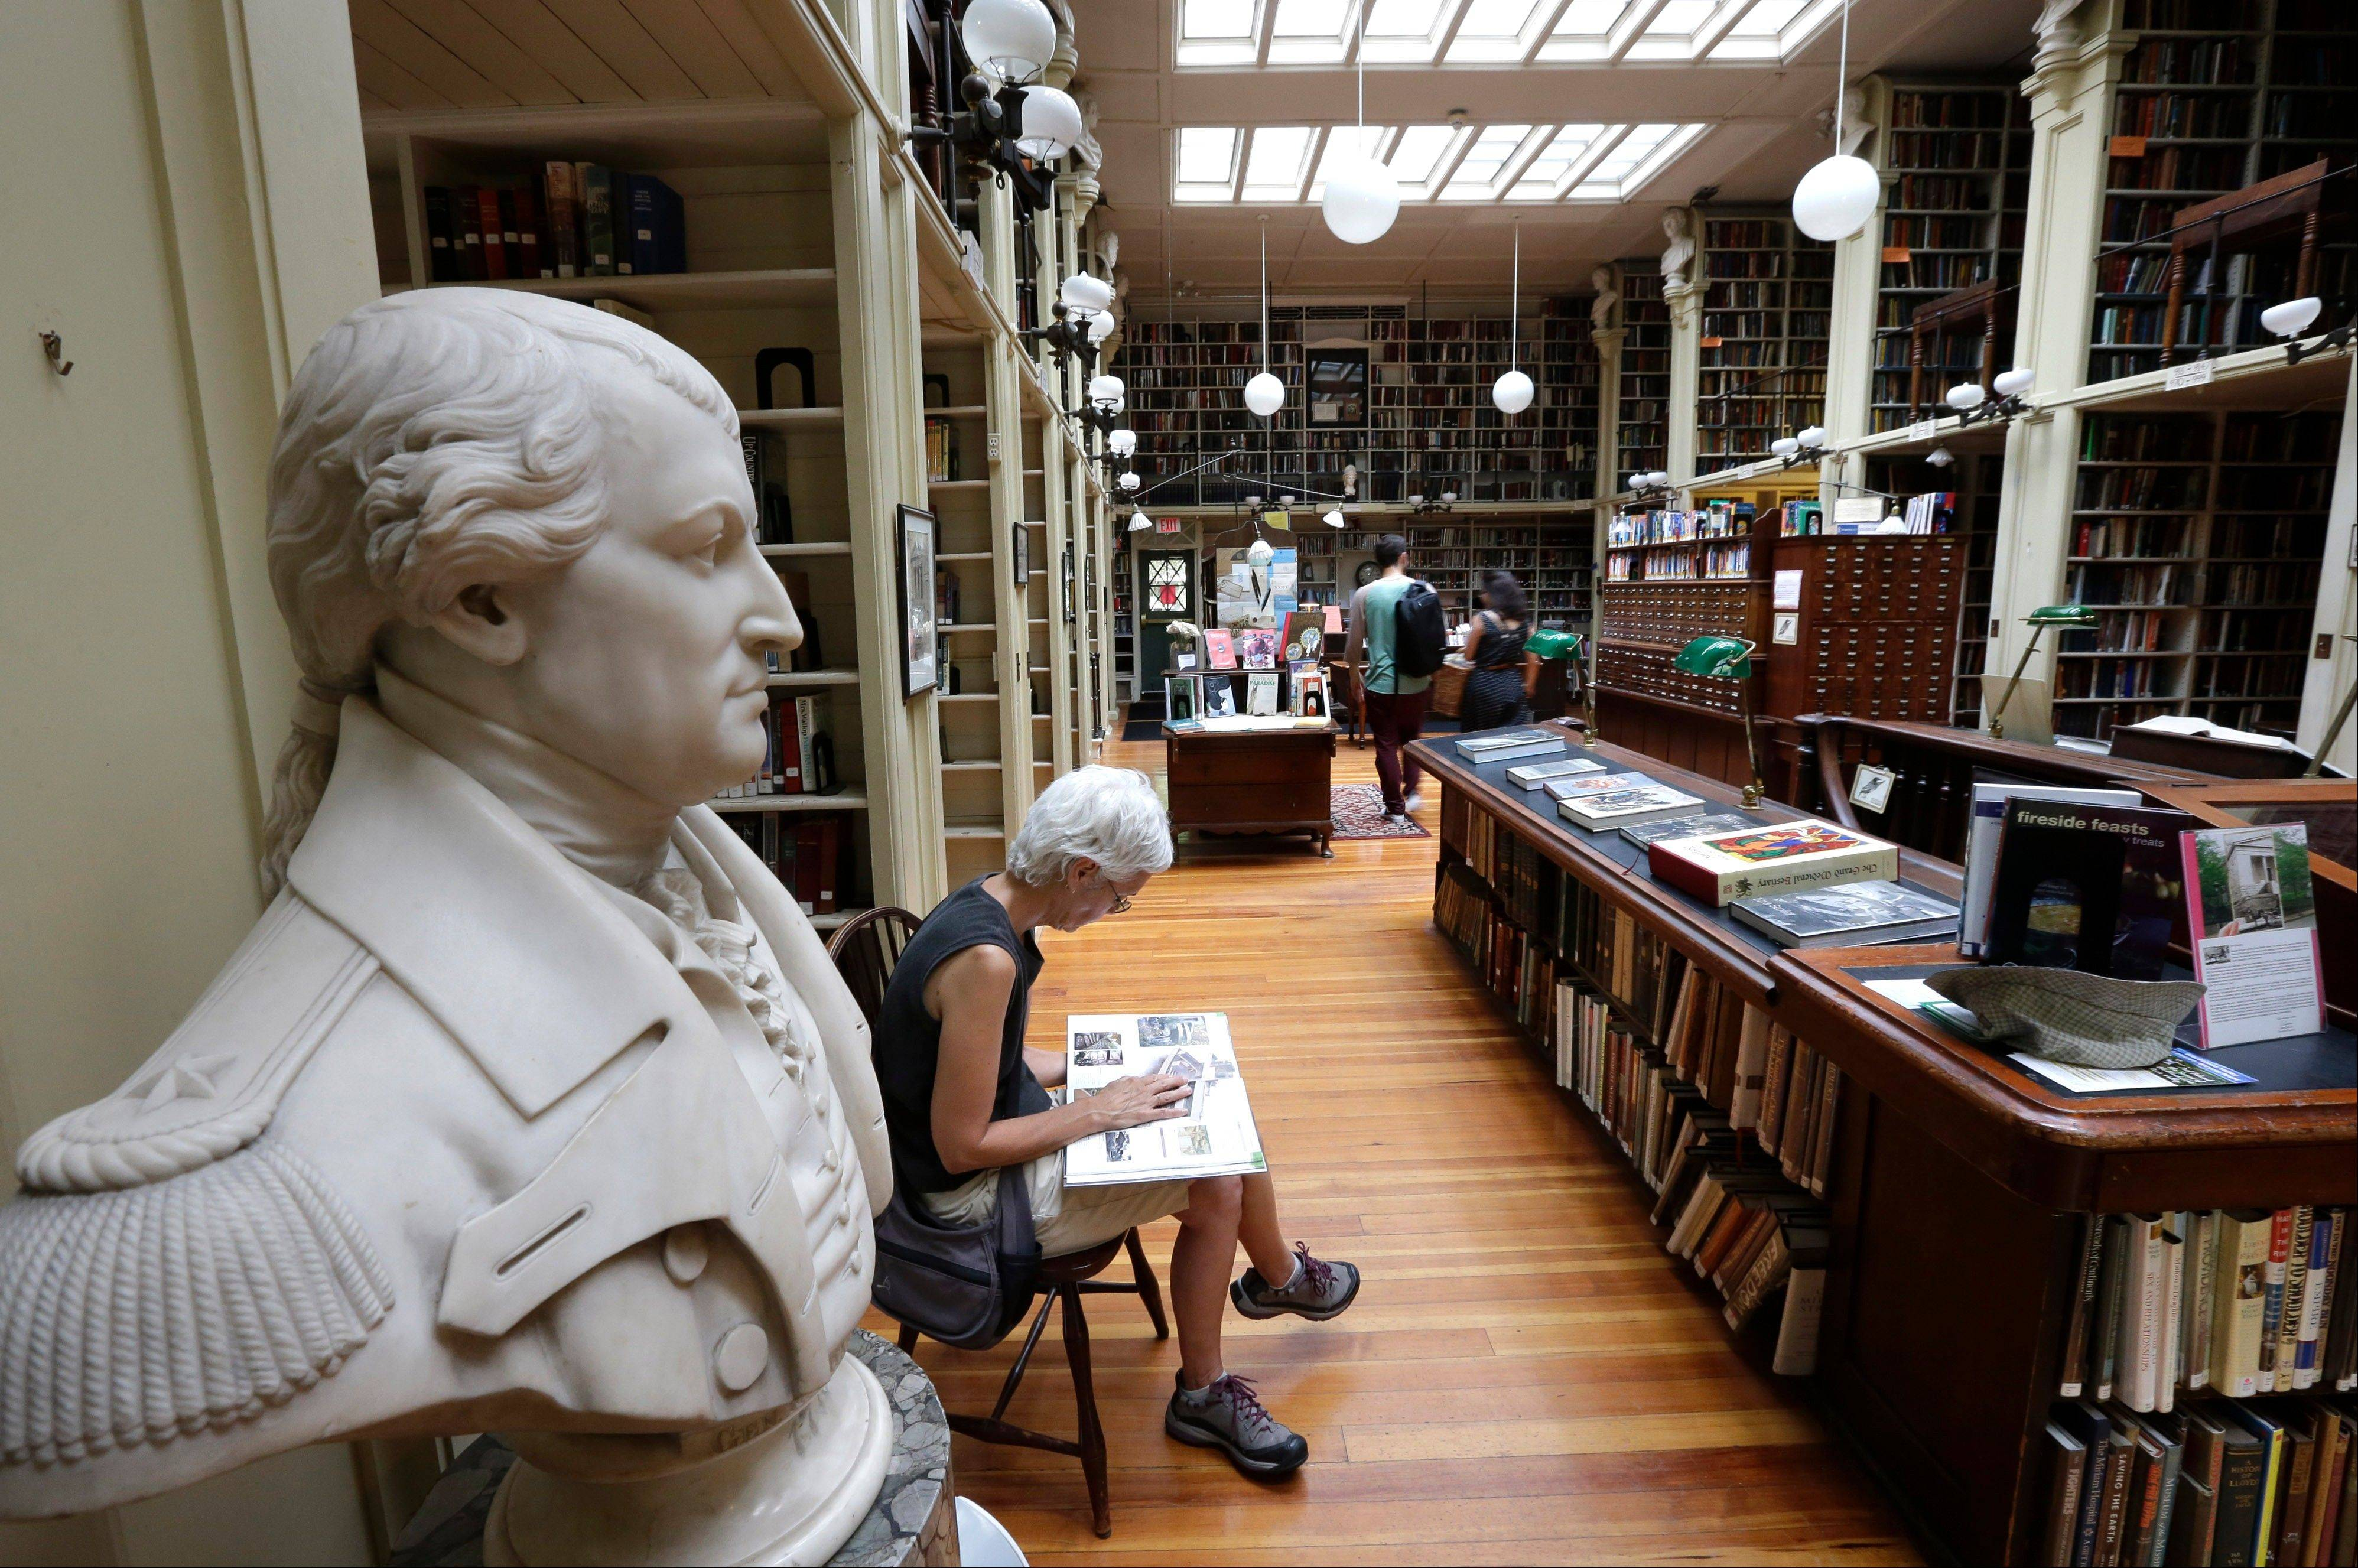 A woman reads while seated next a statue of American Revolutionary War Gen. Nathanael Greene, left, at the Providence Athenaeum, in Providence, R.I.